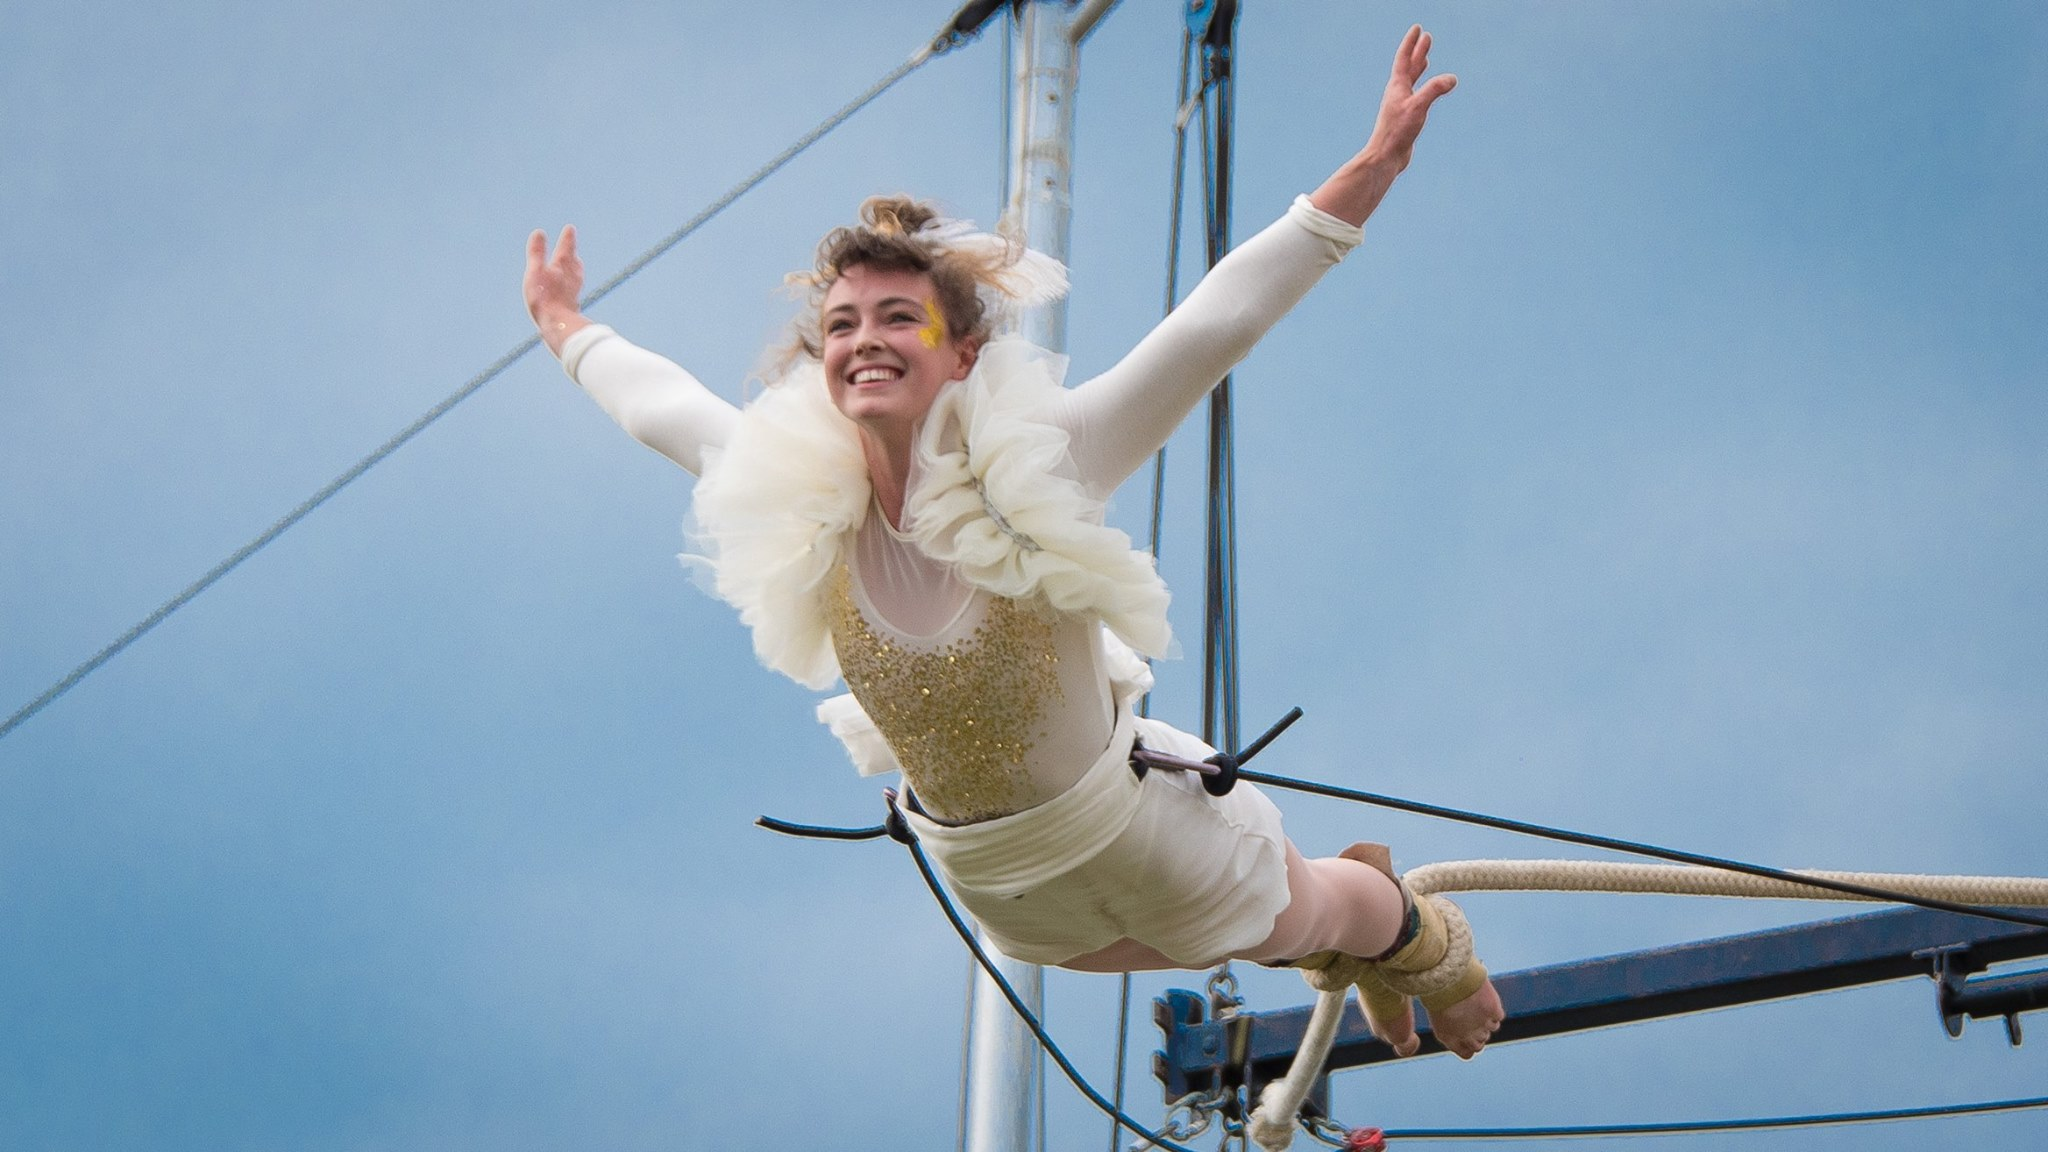 Tilly flies through the air, smiling brightly, her feet tied to a circus rope. Outdoors rigging and a grey sky behind her.